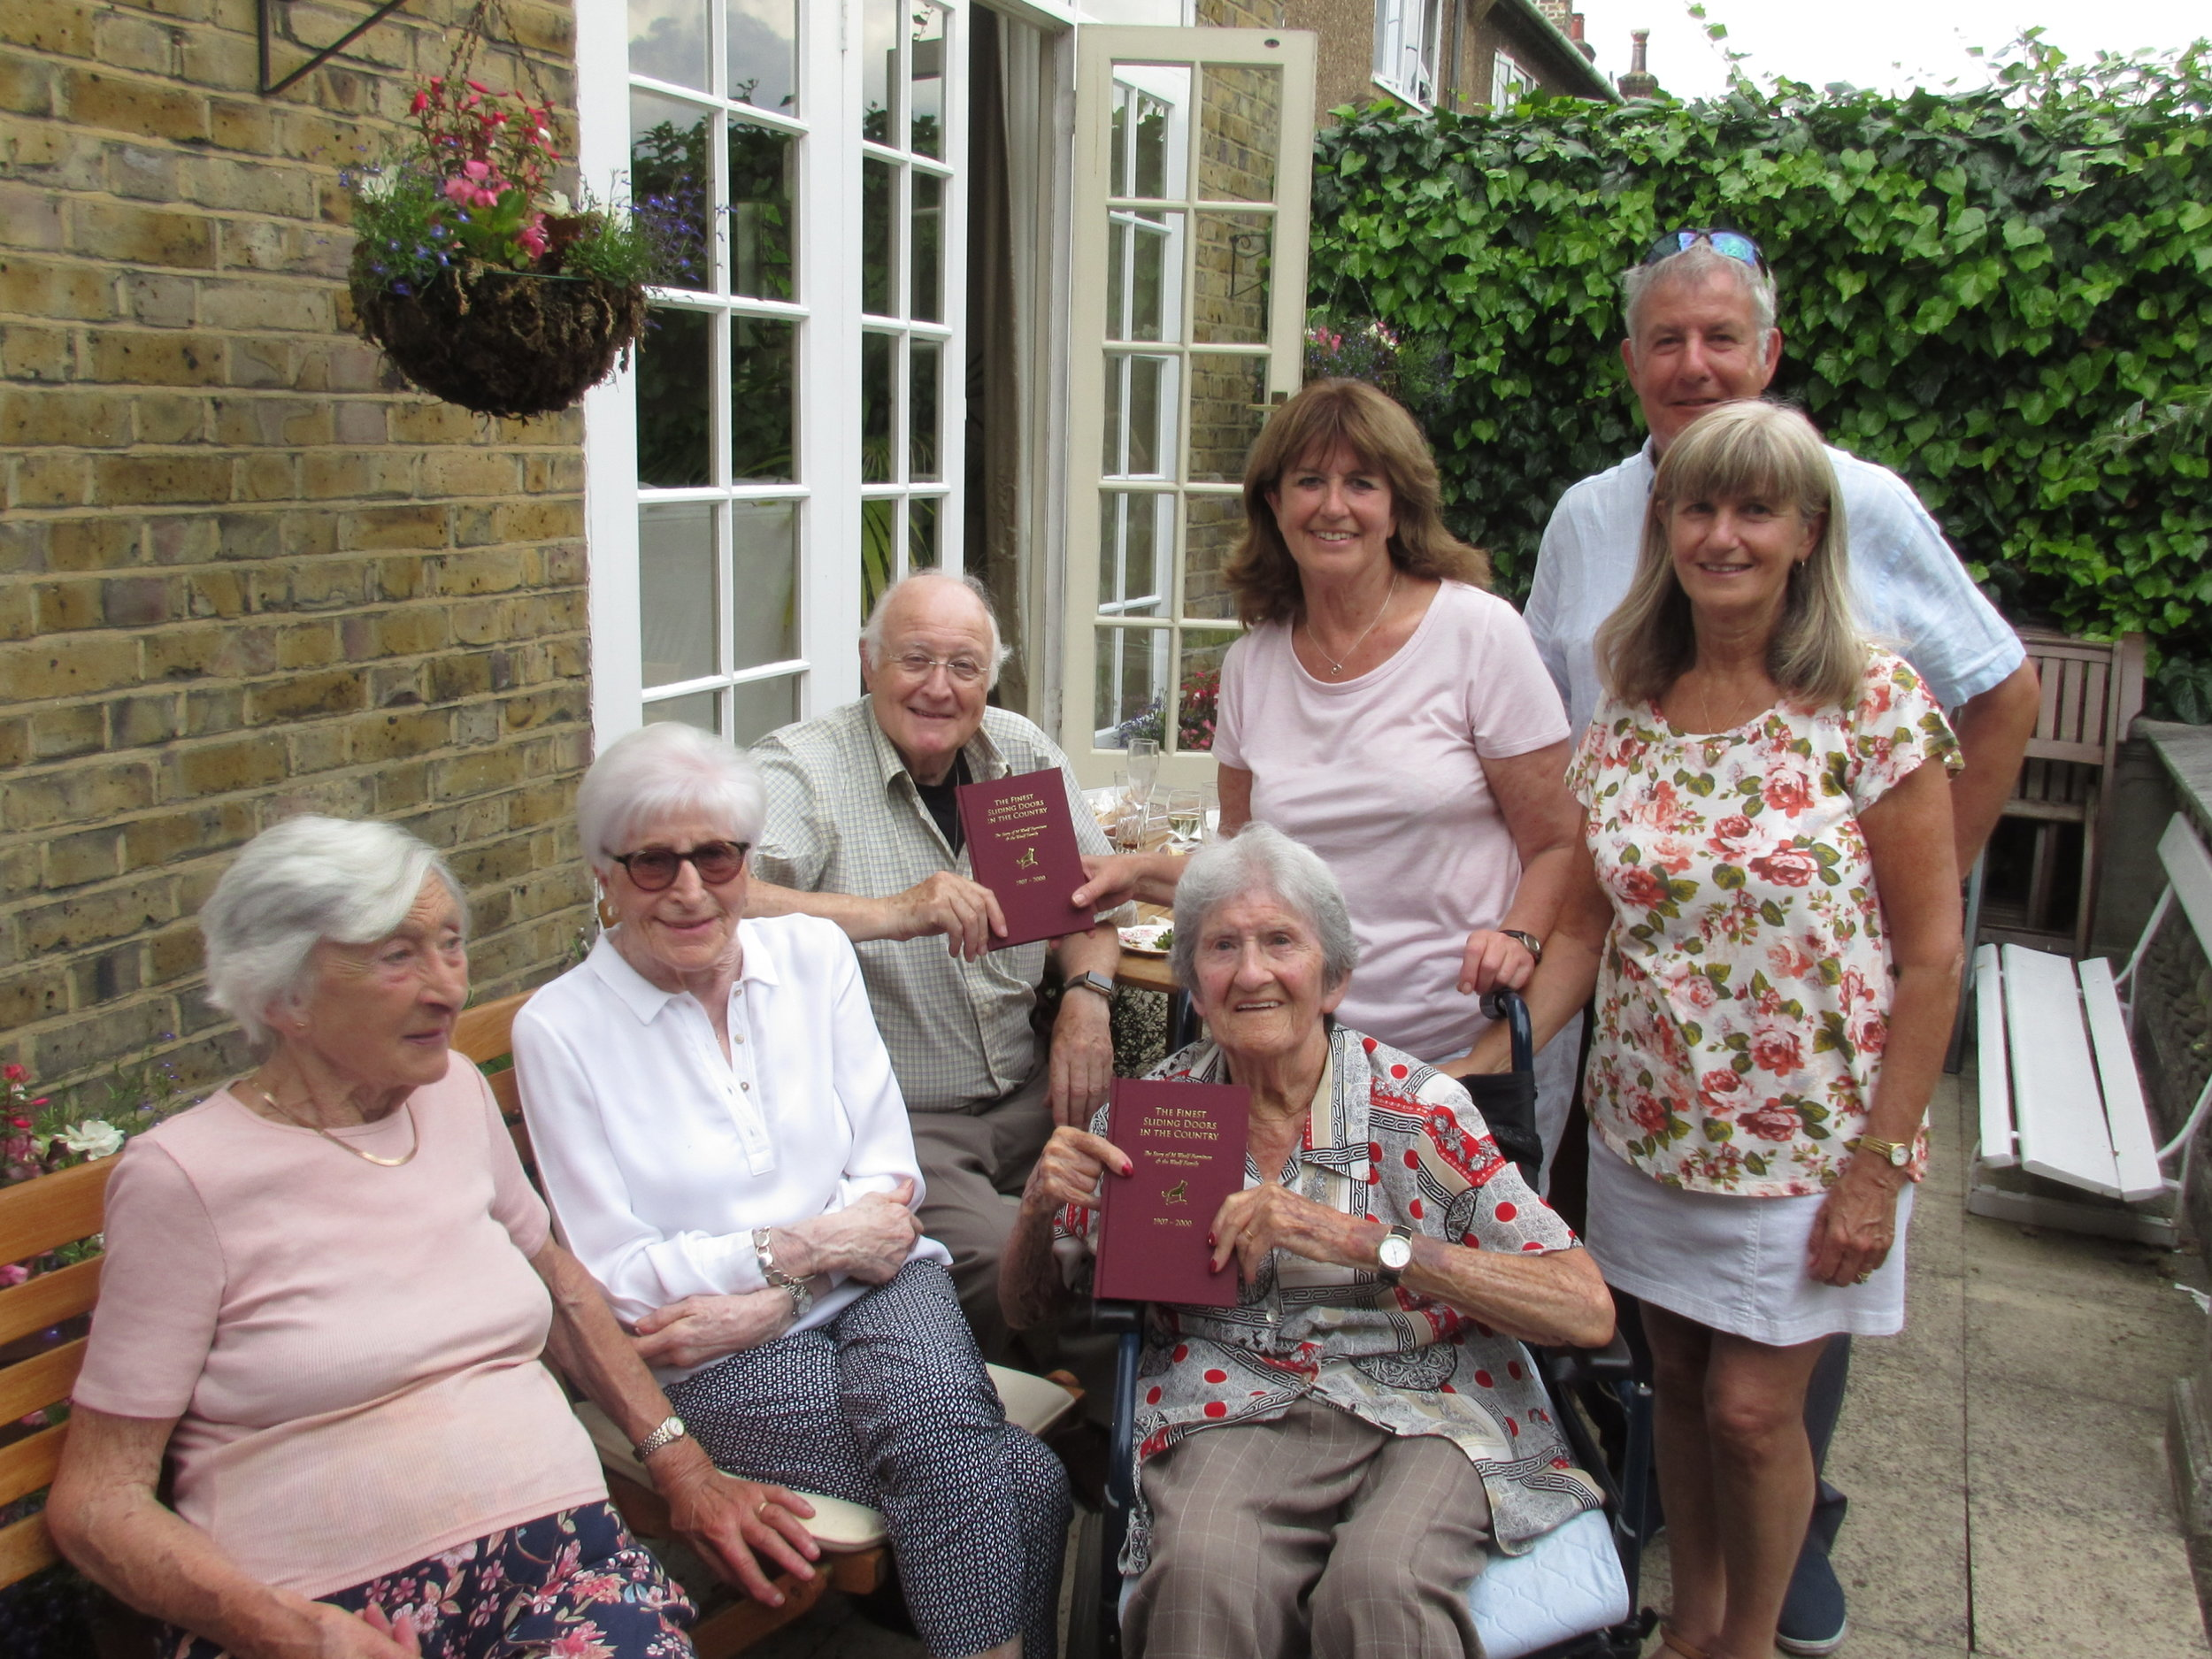 Vivienne with some of her family and copies of her family history book, written and produced by Book of My Life